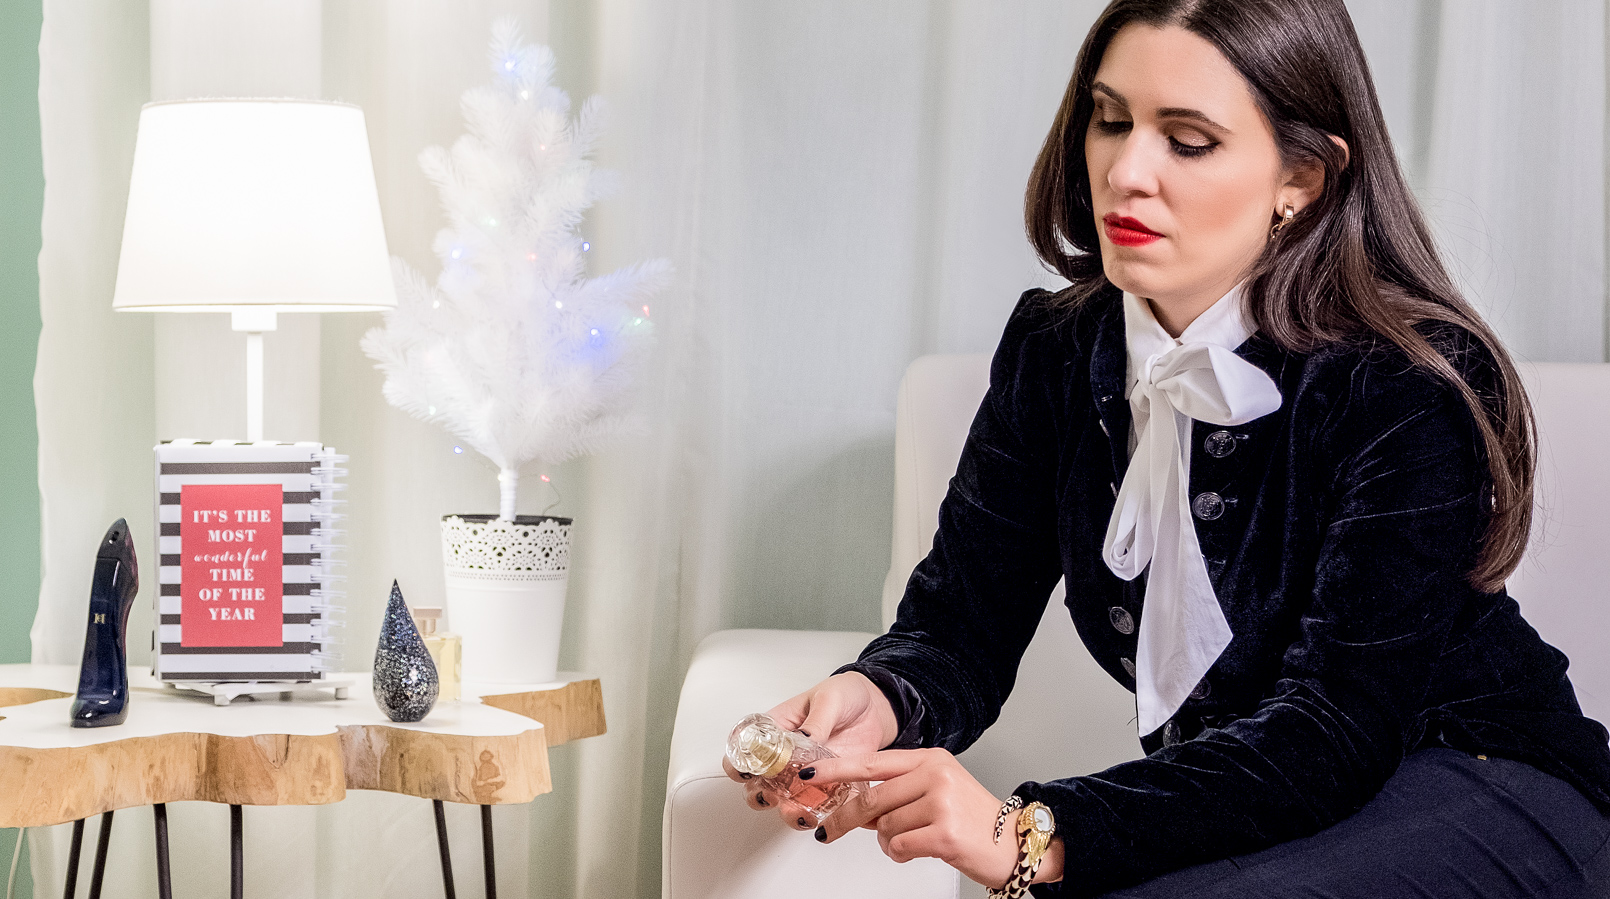 Le Fashionaire Christmas gifts ideas: the best 4 perfumes for her perfume red lips white big bow neck globe cotton shirt snake roberto cavalli watch good girl carolina herrera heel midnight rain la prairie perfume 5038F EN